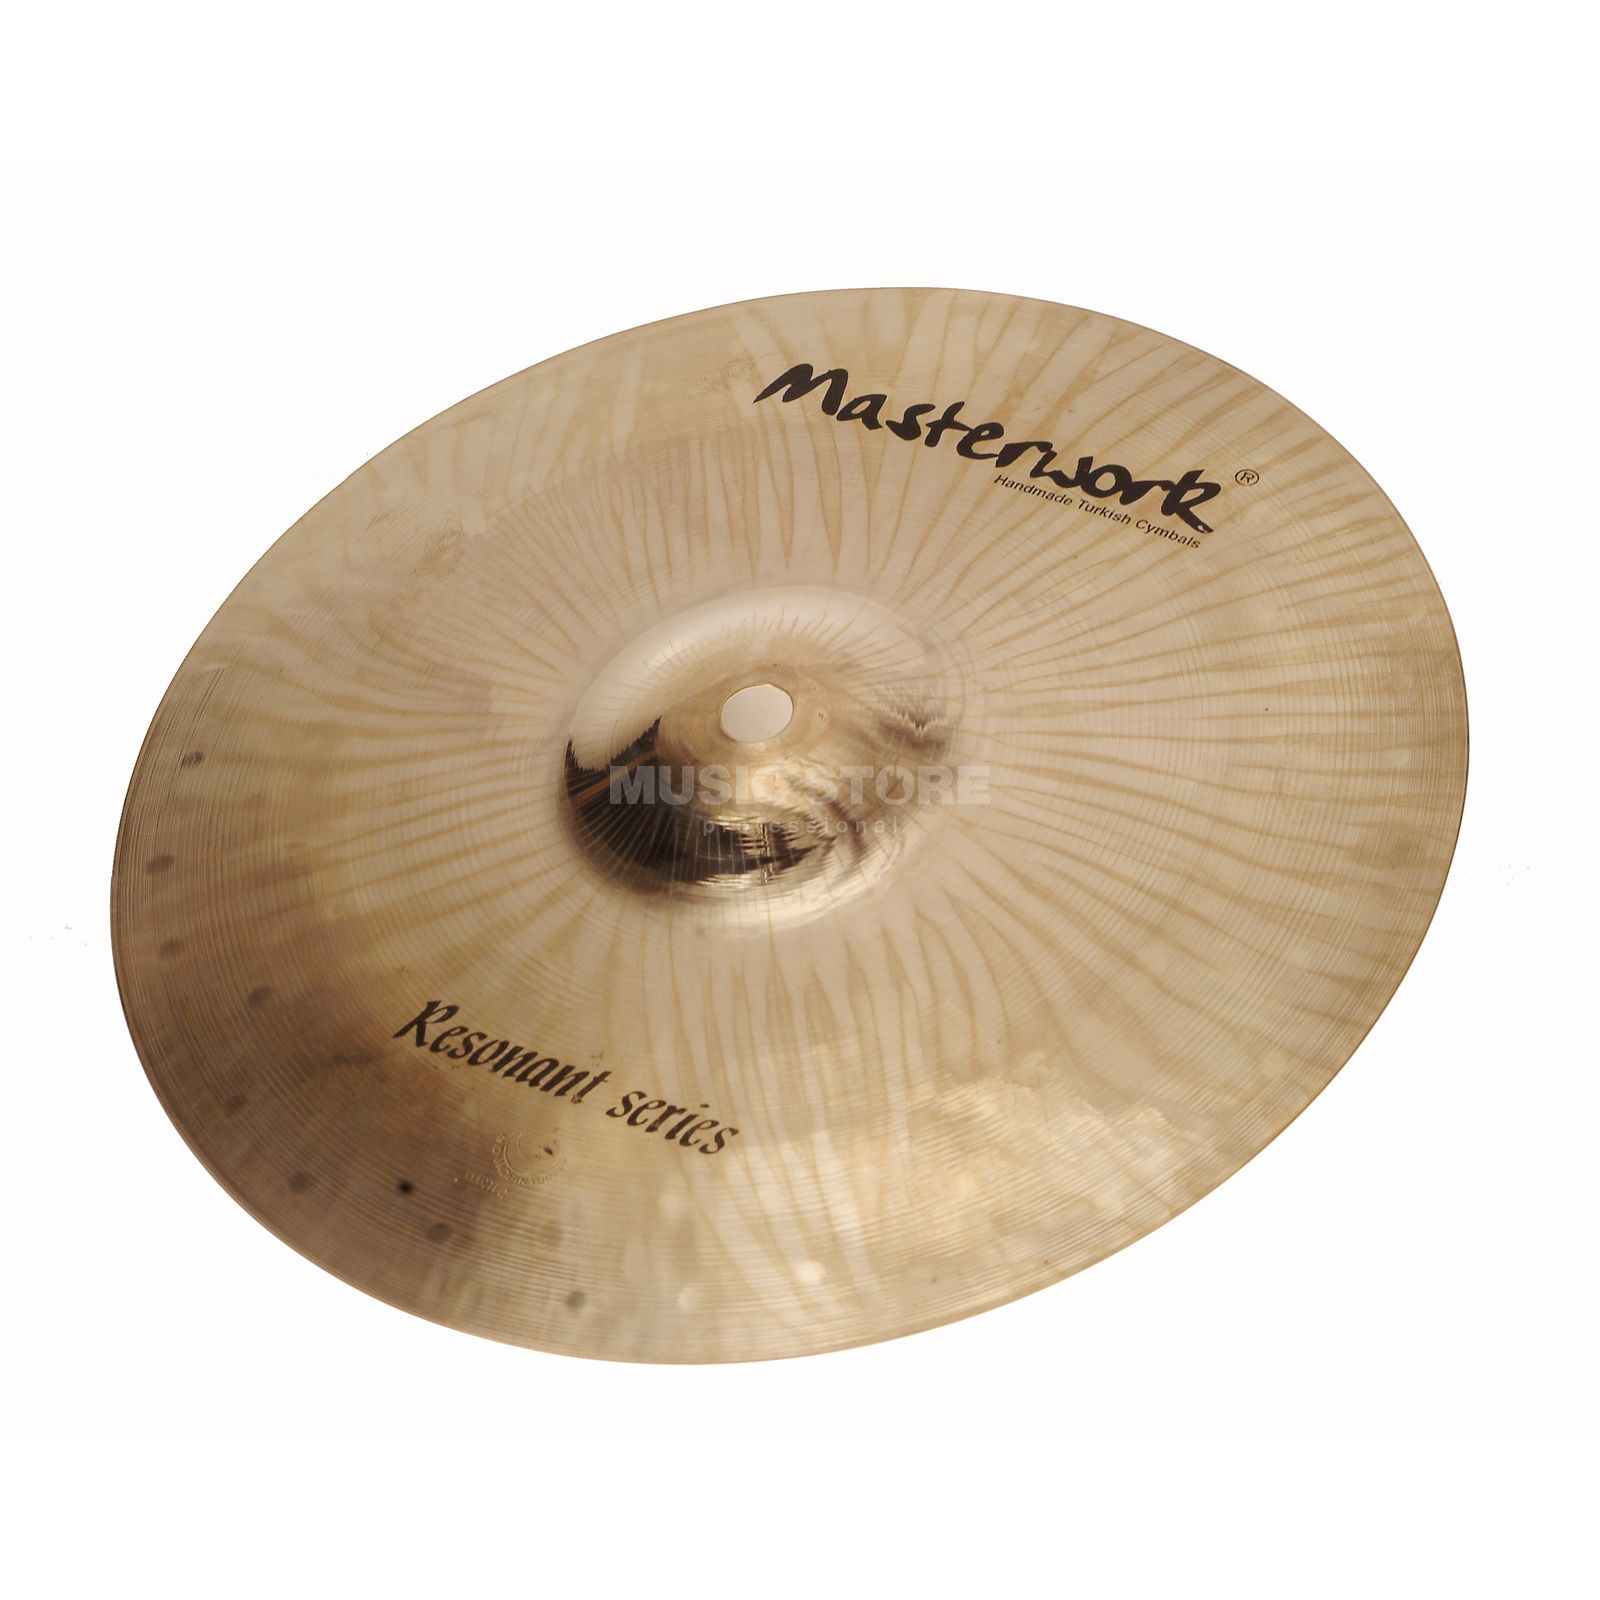 "Masterwork Resonant Splash 6"" Brilliant Finish Zdjęcie produktu"